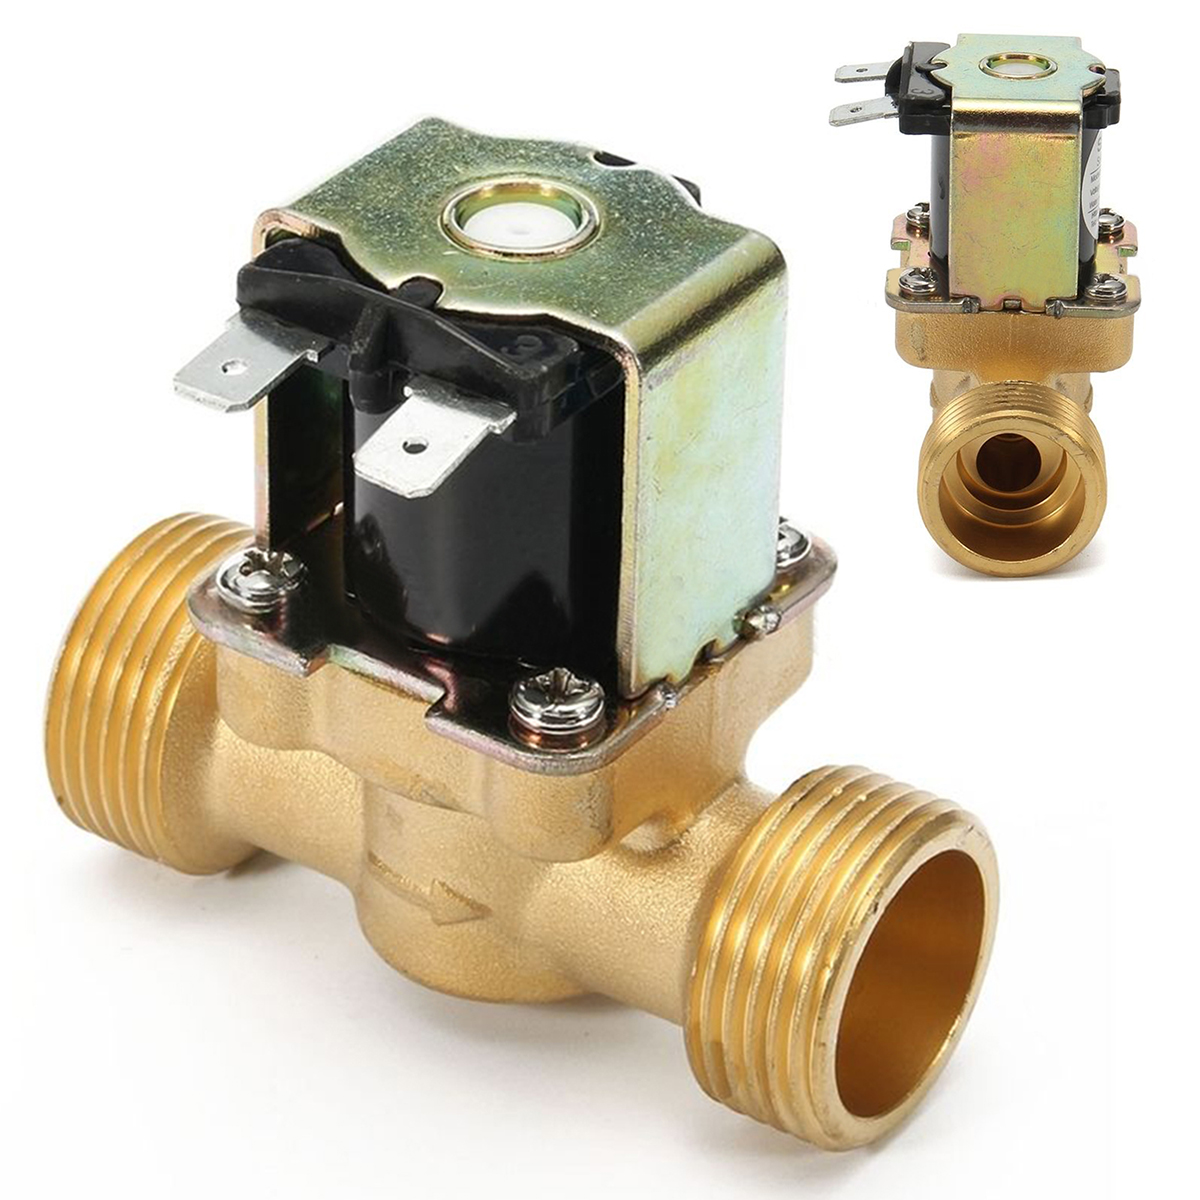 DSHA New 3/4 INCH NPSM 12V DC Slim Brass Electric Solenoid Valve Gas Water Air Normally Closed 2 Way 2 Position Diaphragm Val 3 4 solenoid valve normally closed npsm 12v dc slim brass electric solenoid valve gas water air 2 way 2 position valves